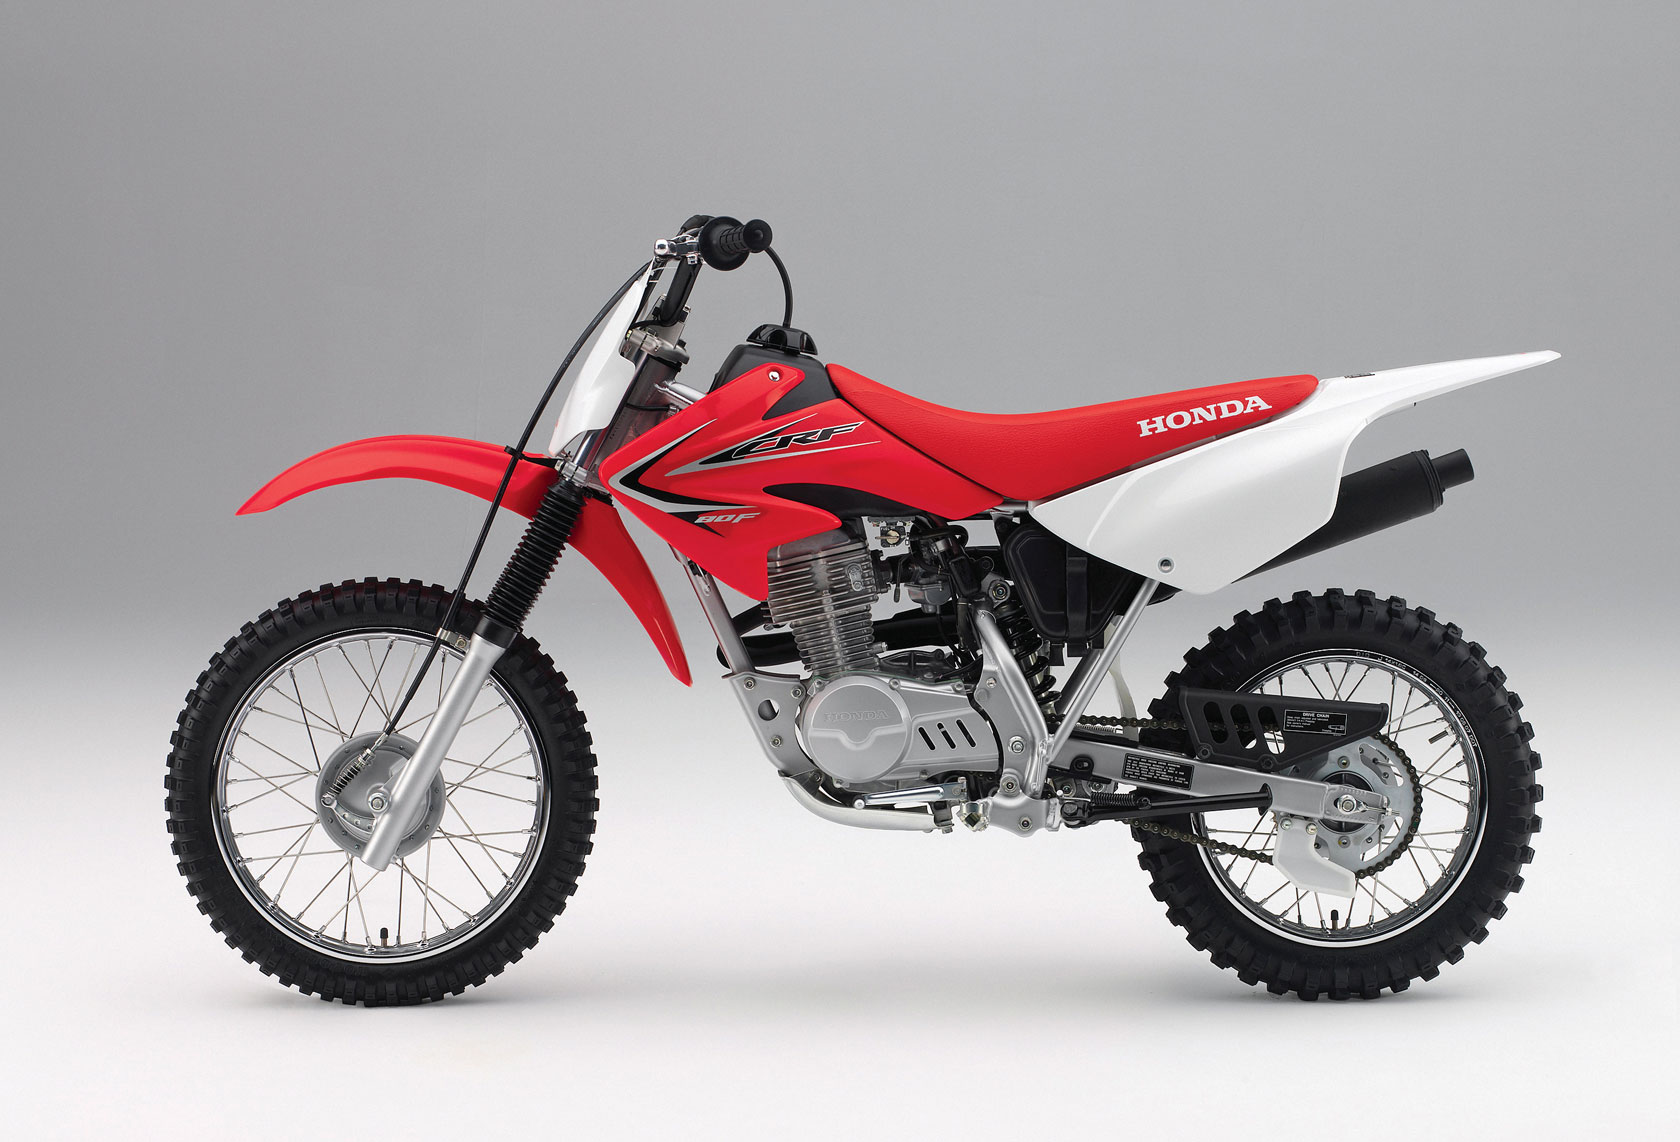 honda crf80f specs 2010 2011 autoevolution. Black Bedroom Furniture Sets. Home Design Ideas